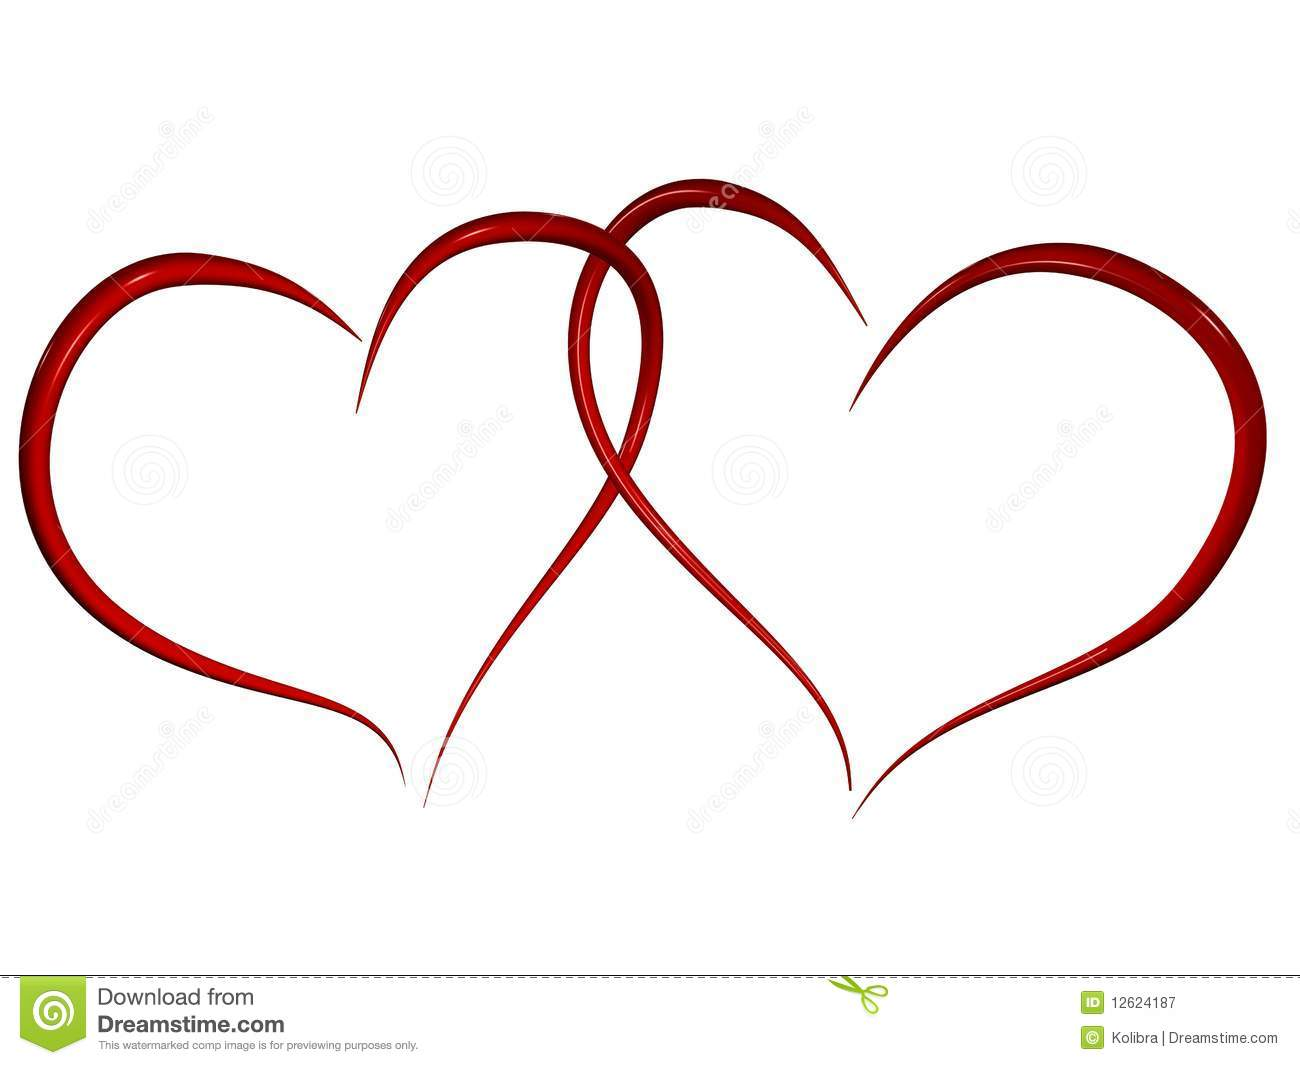 Two hearts intertwined clipart image library library Intertwined Stock Illustrations – 2,068 Intertwined Stock ... image library library